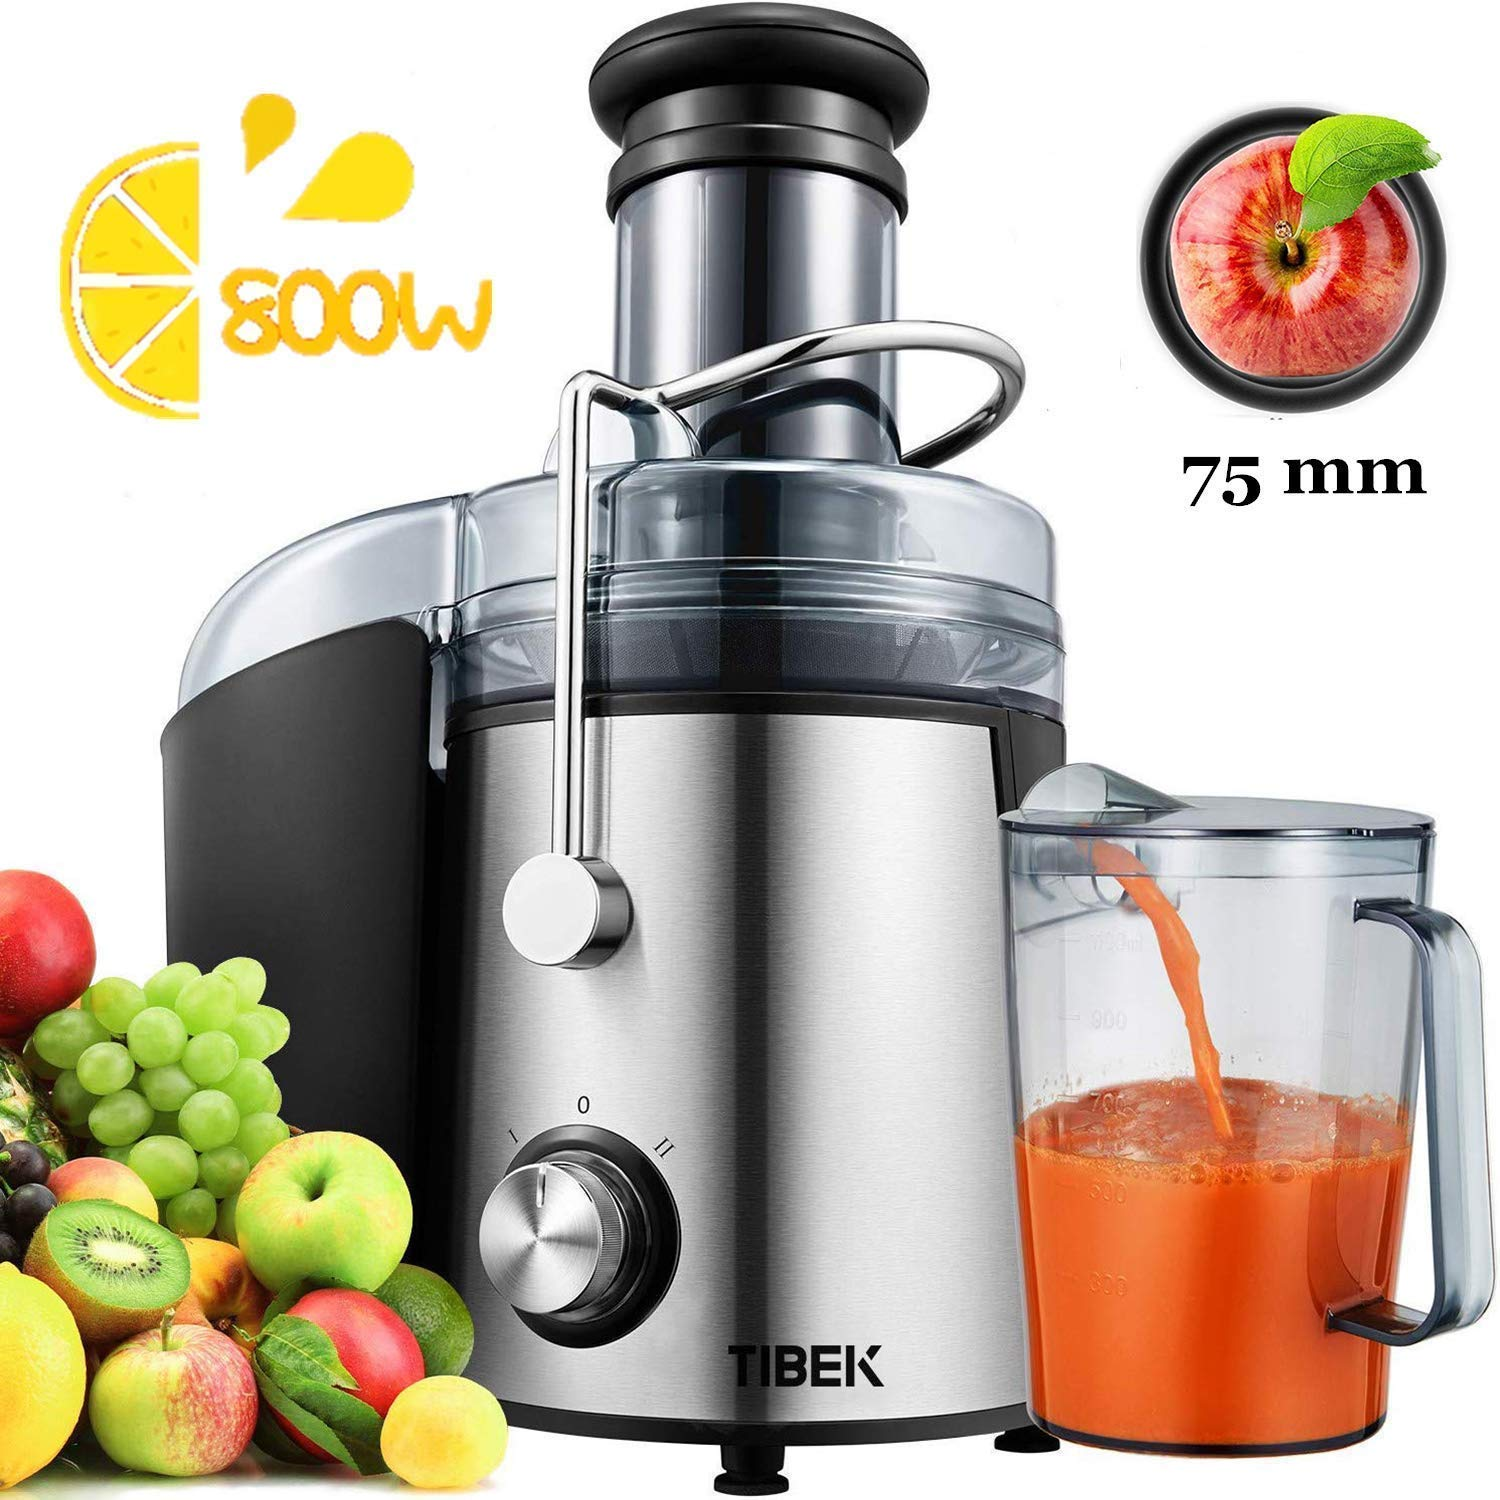 Aicok centrifugal juicer 2 Speed for fruits and vegetables